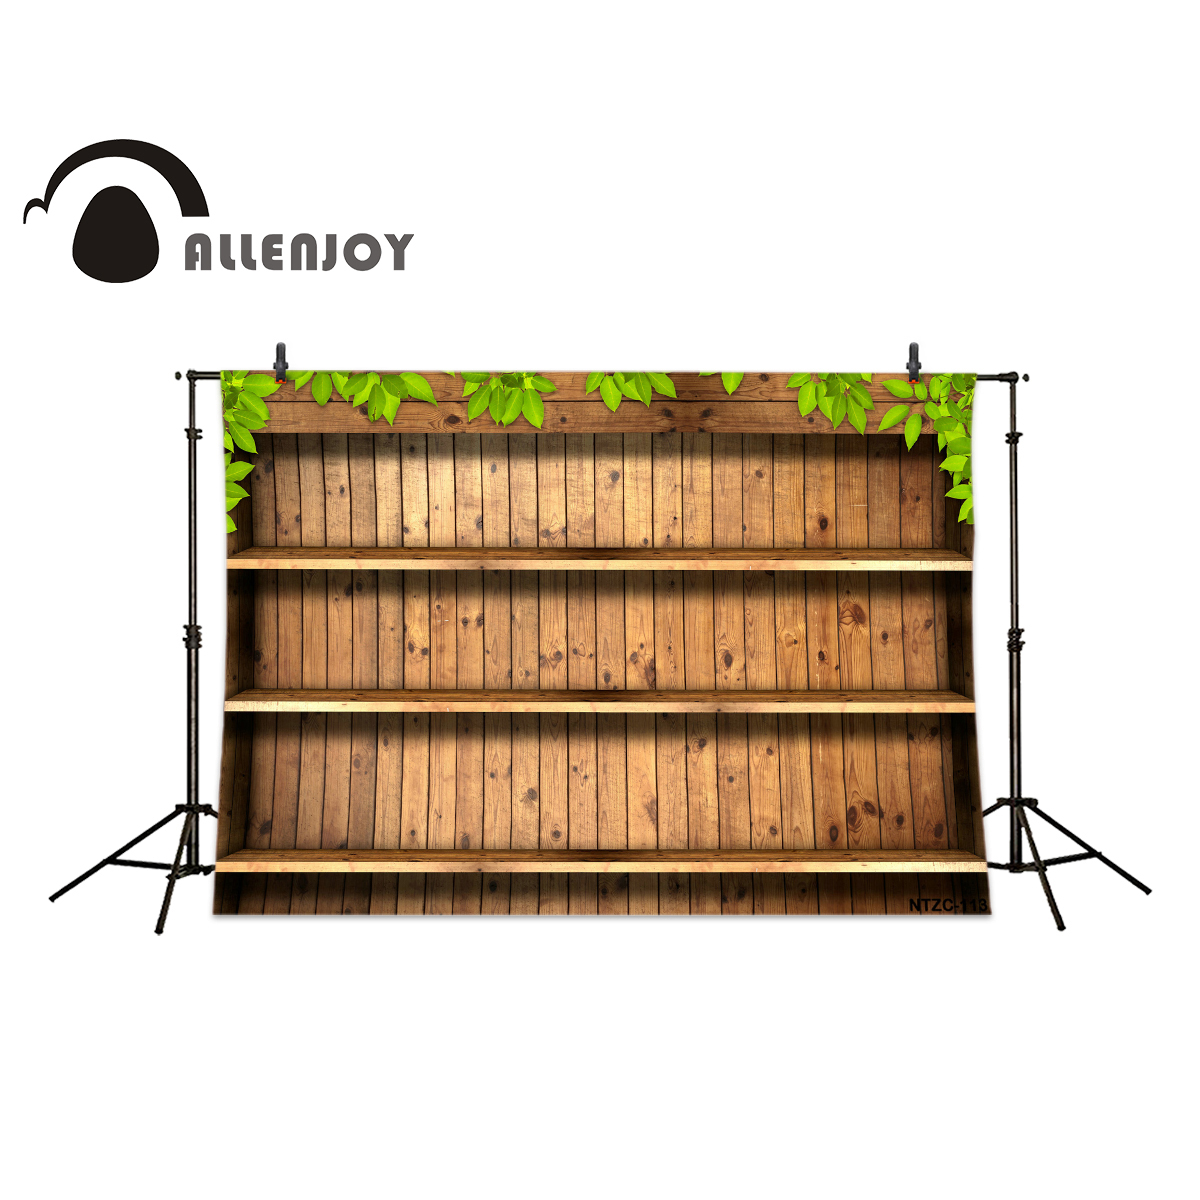 Allenjoy photography backdrops Wooden shelves plant wood brick wall backgrounds for photo studio allenjoy christmas photography backdrops christmas background gifts white brick wall wooden floor bulbs table for baby for kids